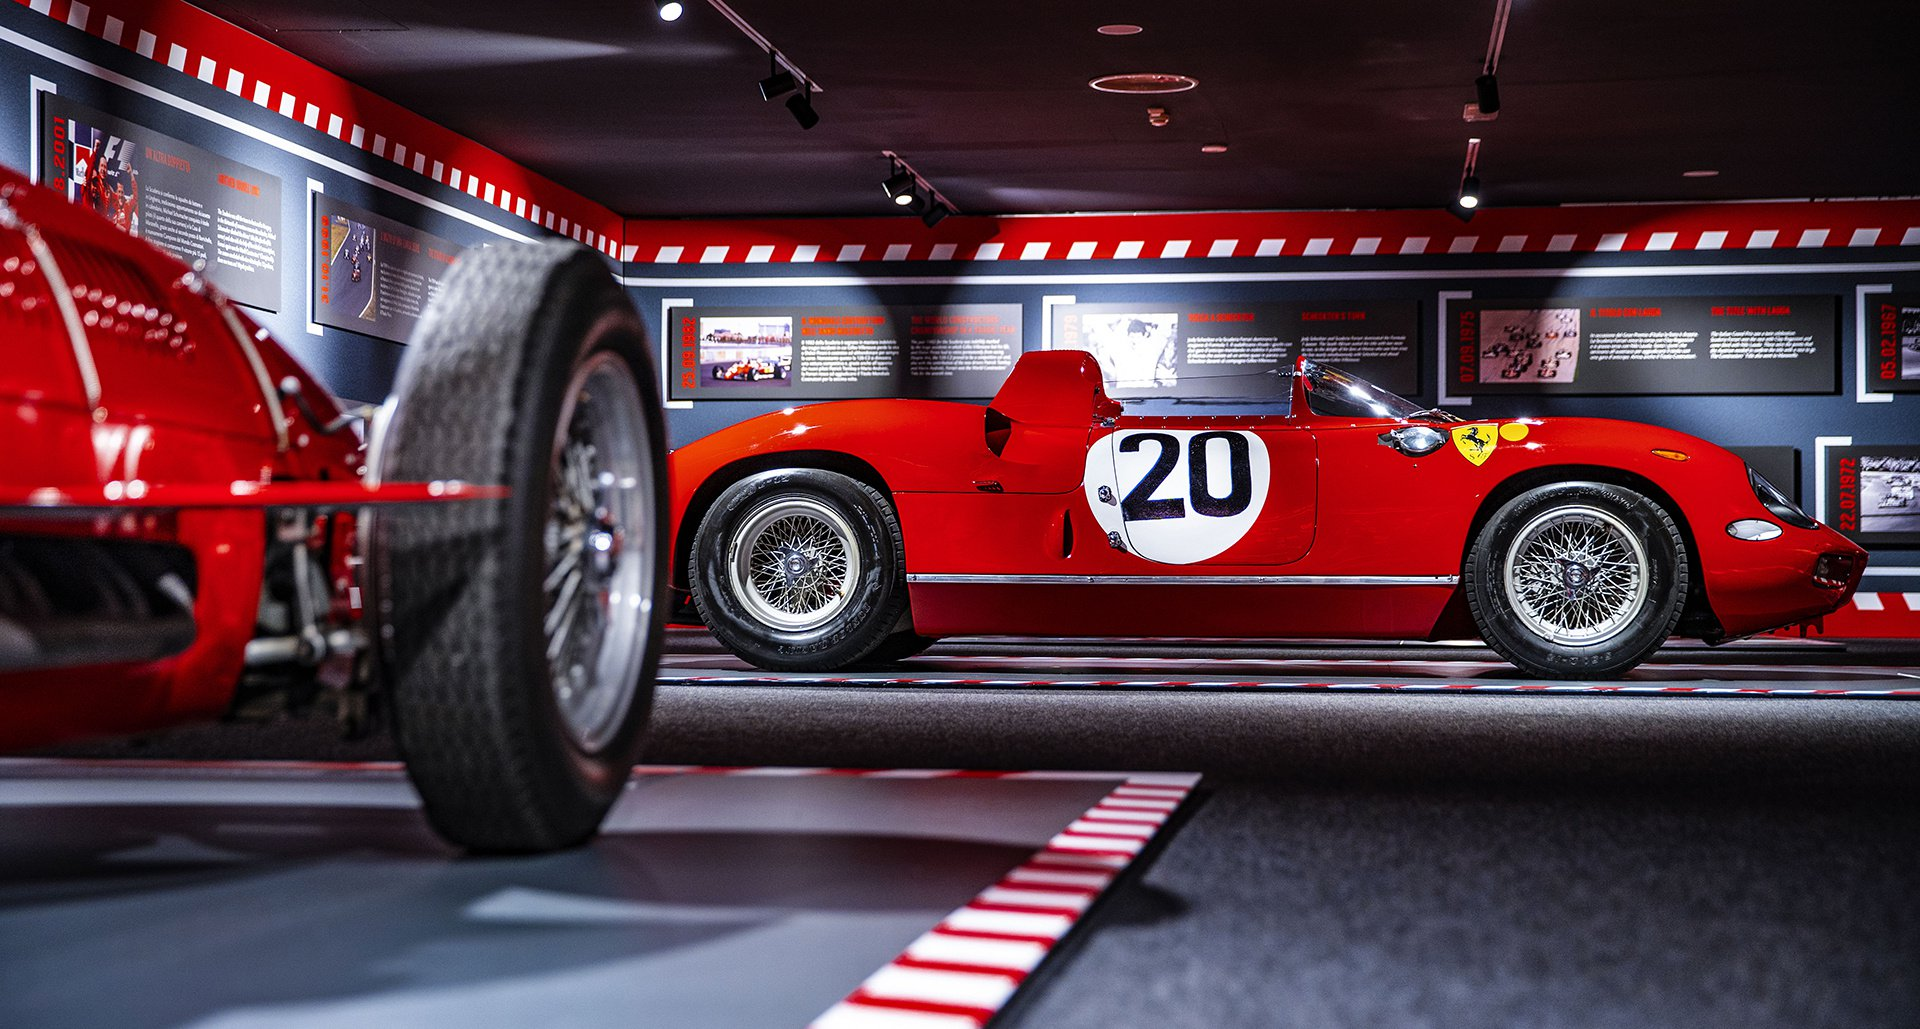 Ferrari-90-Years-Of-Racing-Special-Exhibition-6